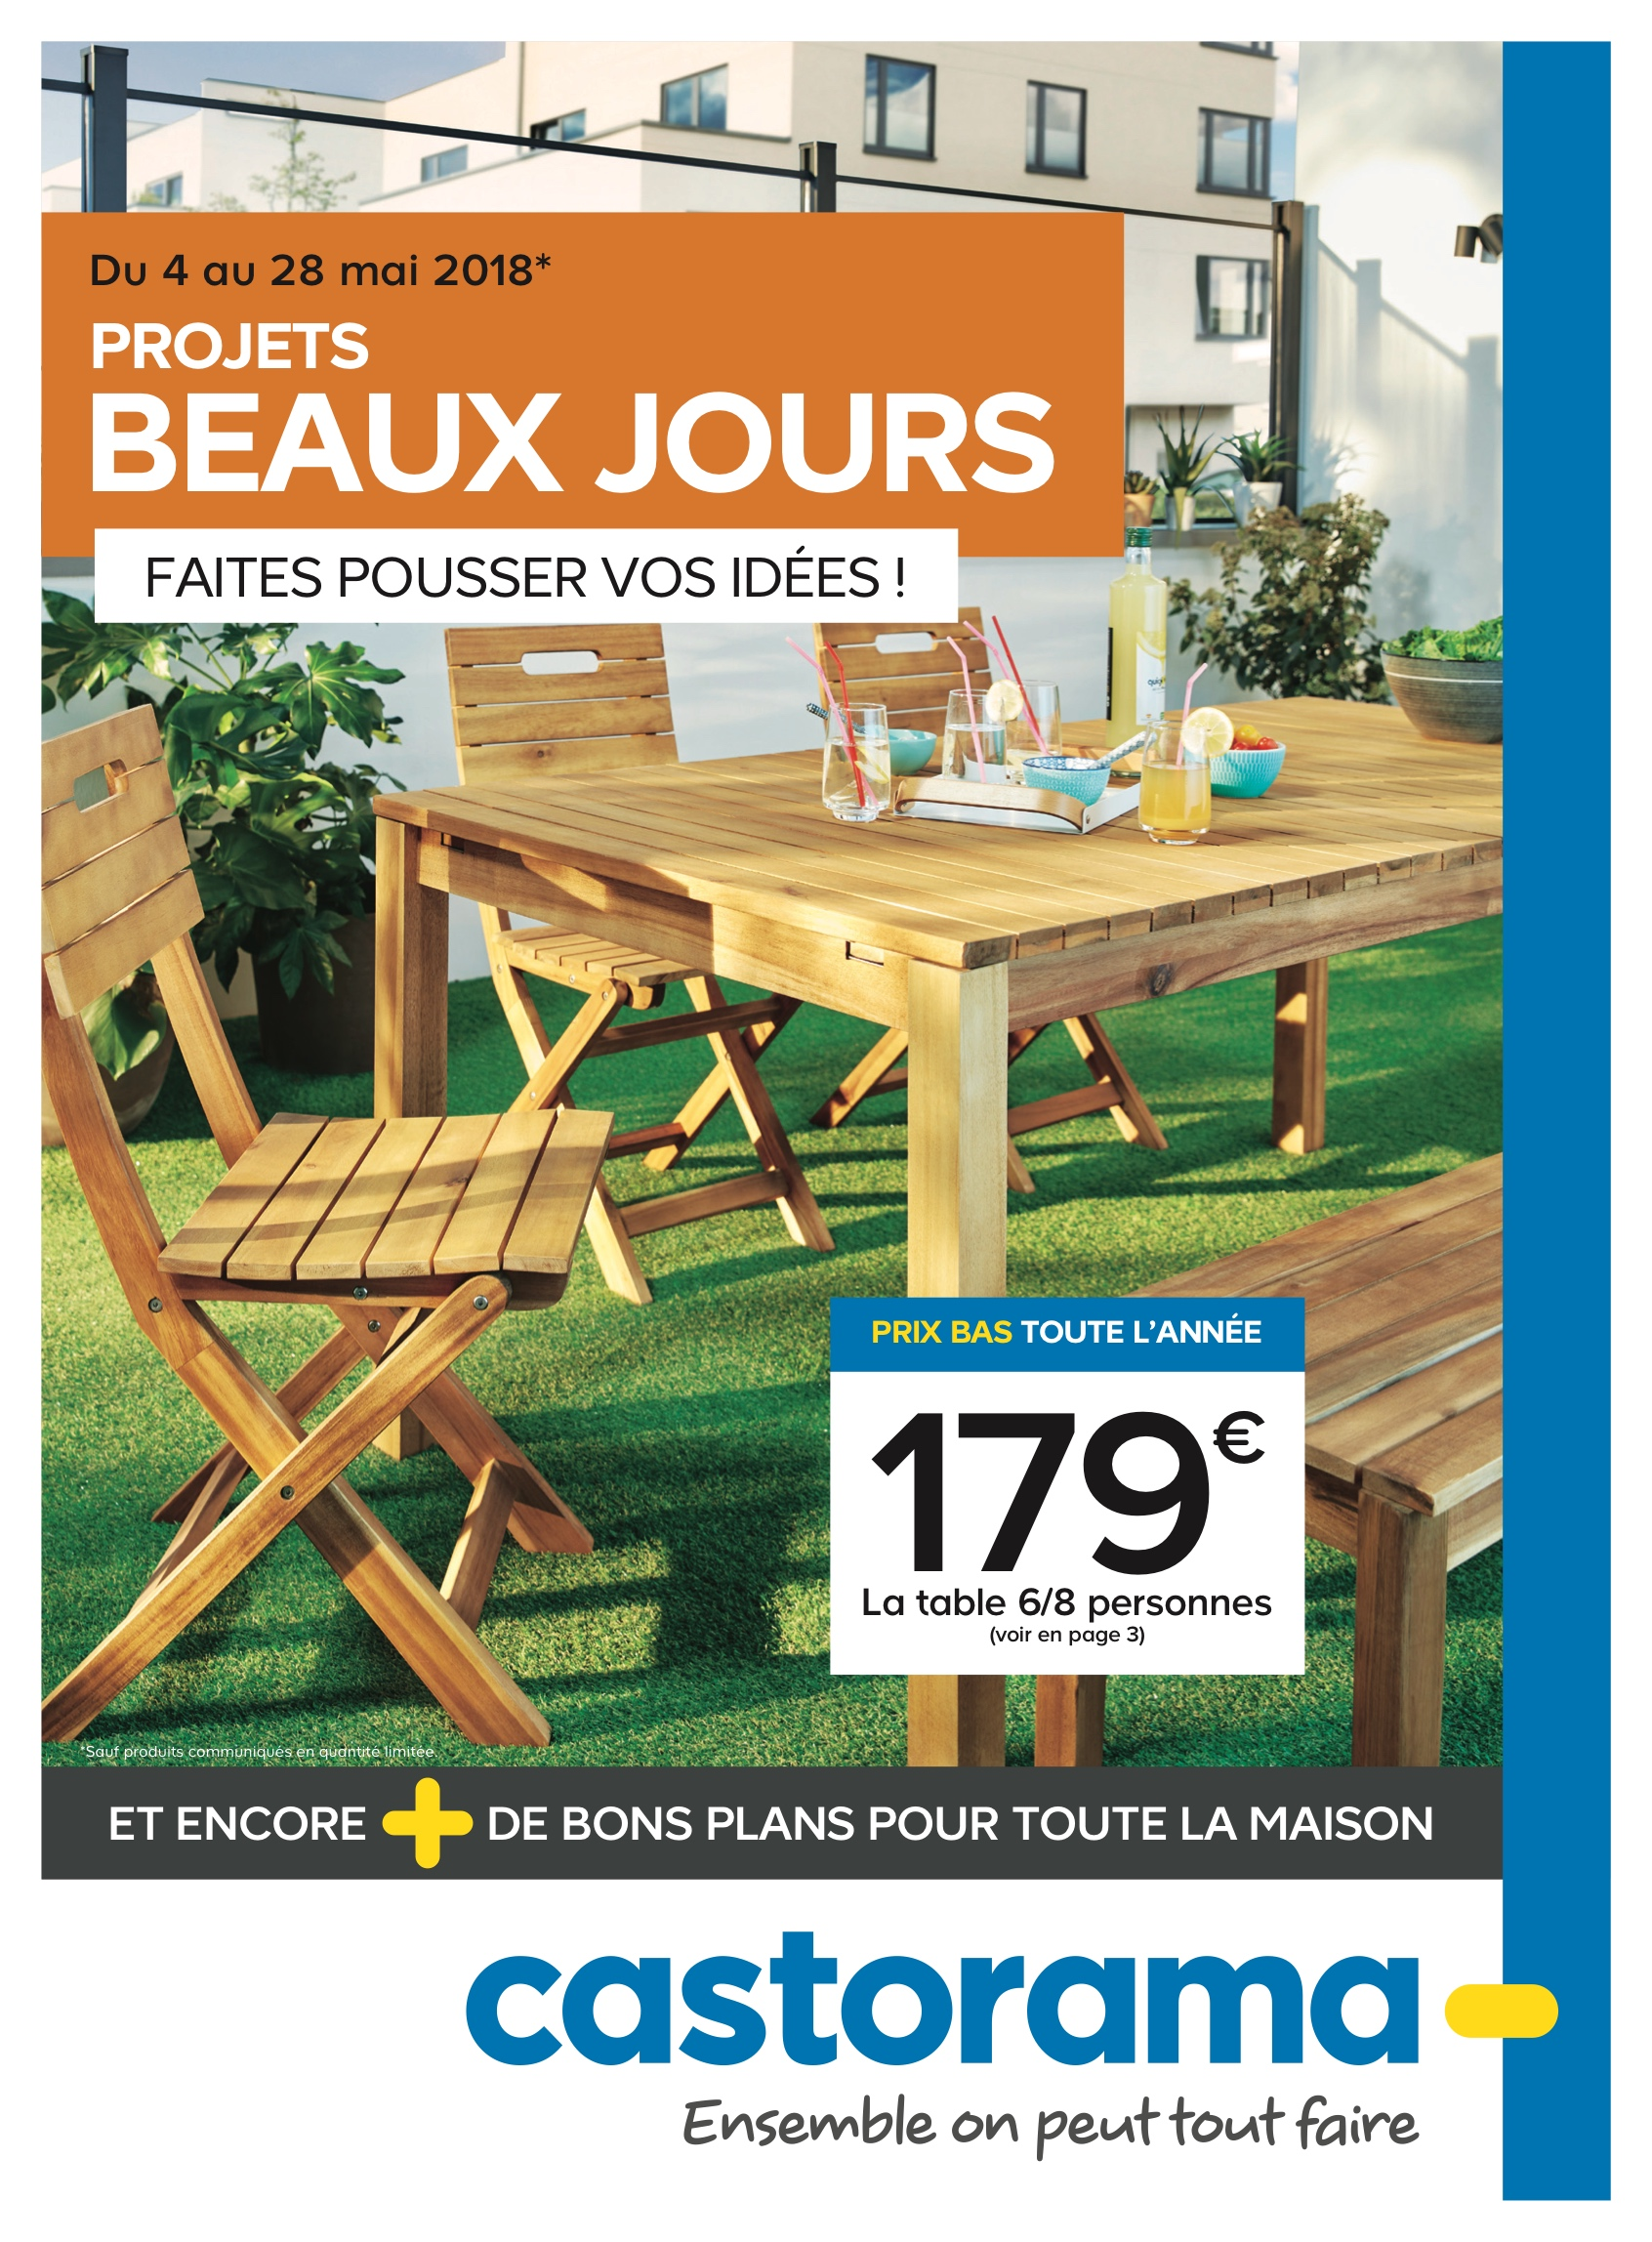 Projets Beaux Jours Pages 1 36 Text Version Anyflip